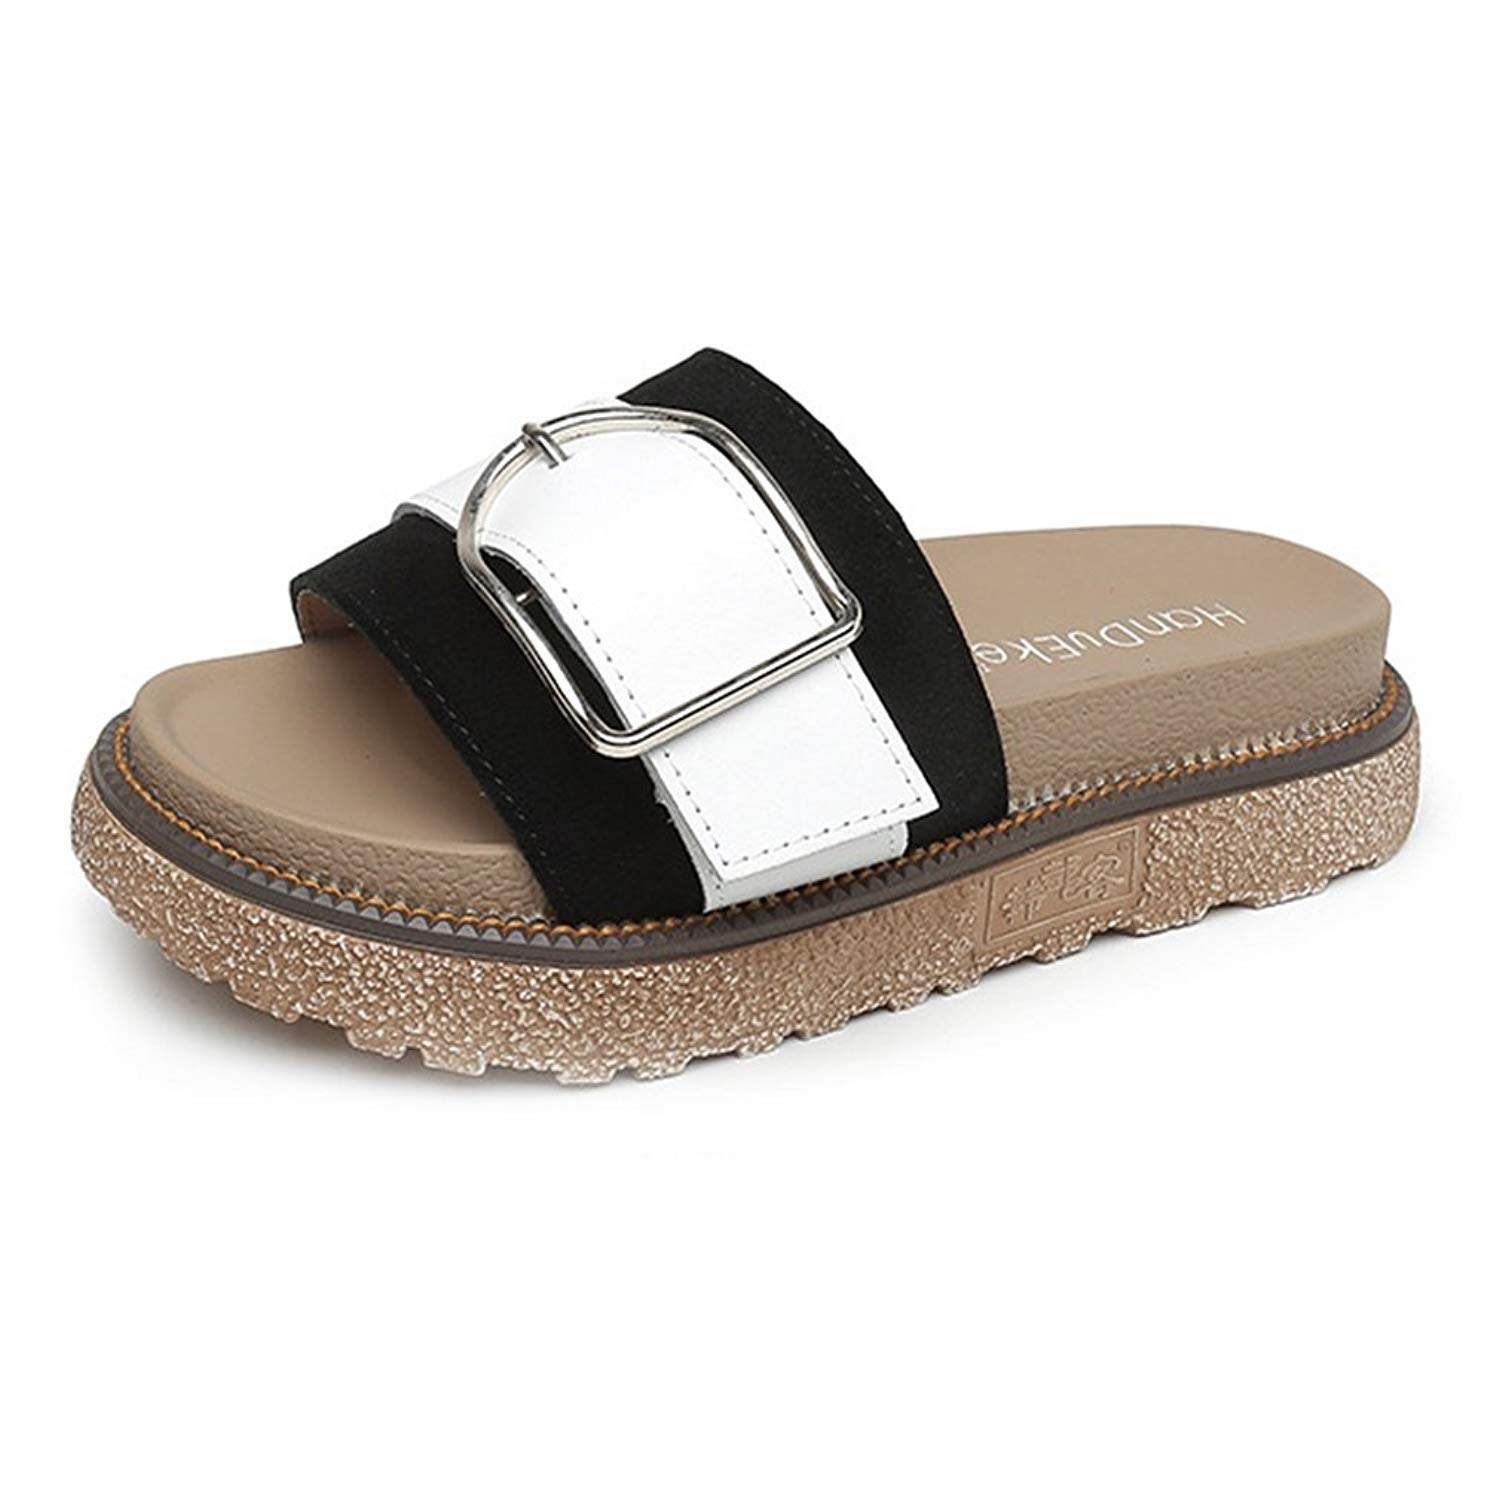 66284ec22acf Get Quotations · CYBLING Womens Slip On Slide Flat Sandals Platform Wedge  Sandal Shoes with Buckle Accent